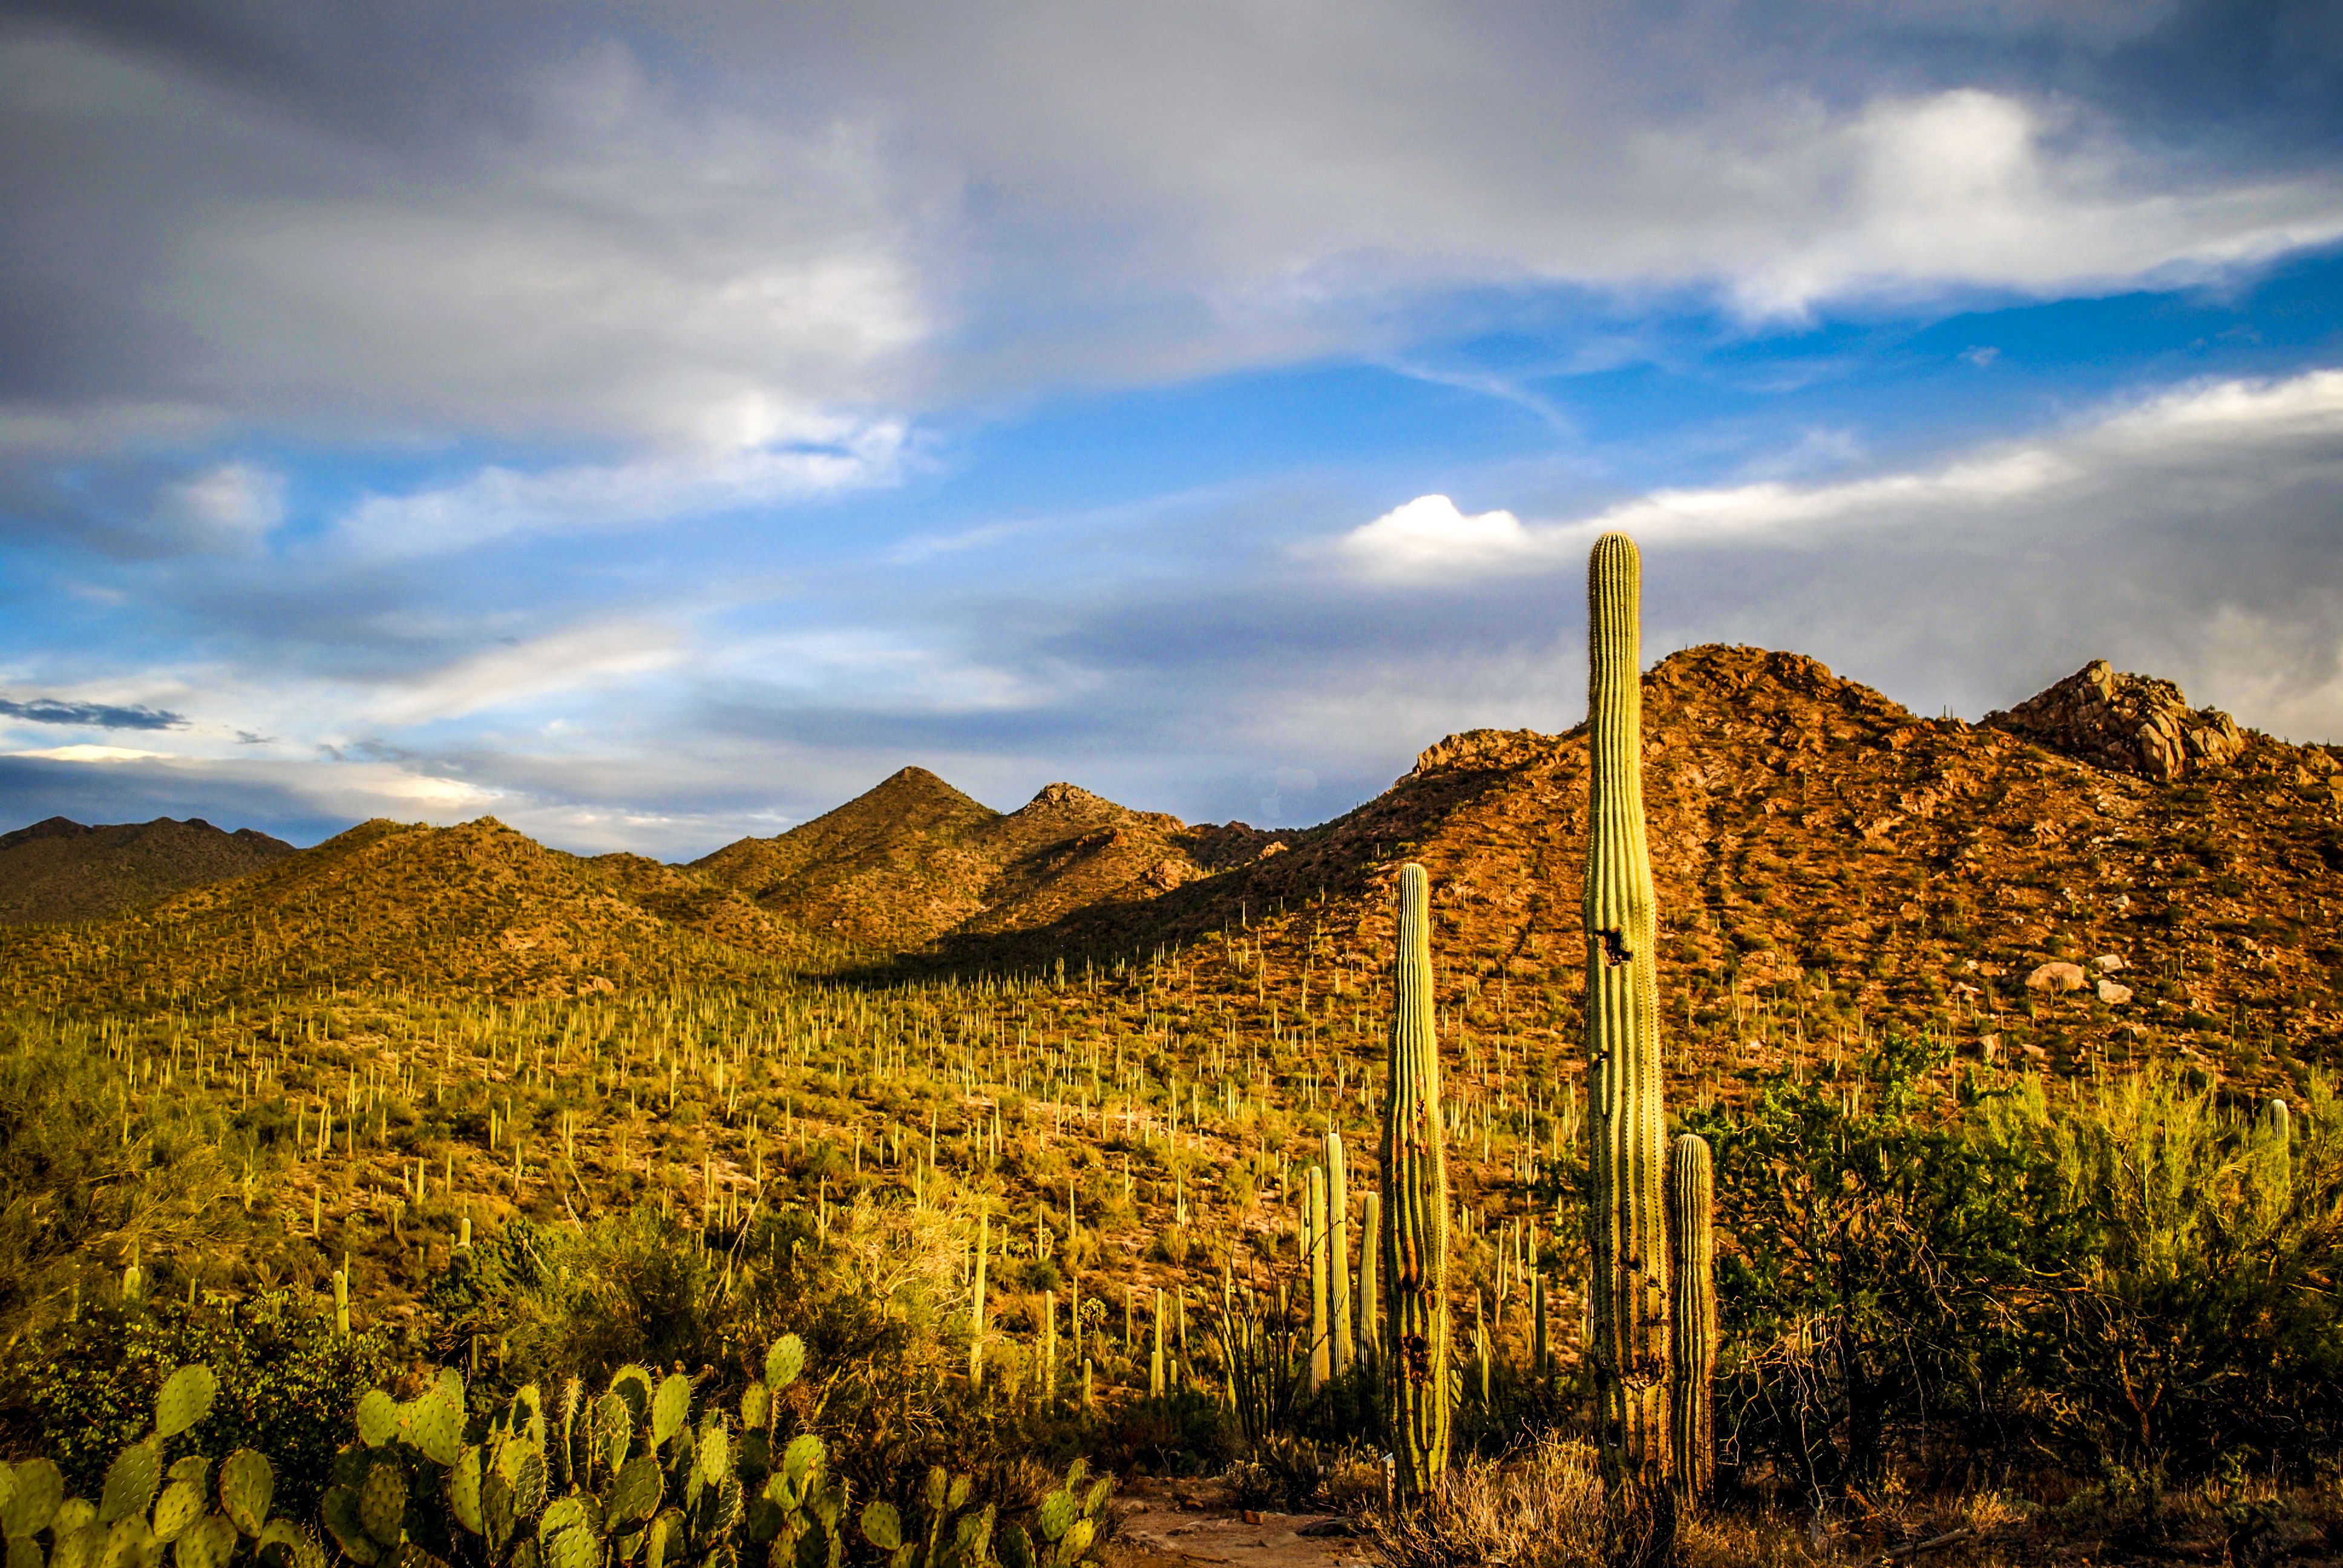 Cheap Auto Insurance >> Free Activities to Do in Tucson, Arizona